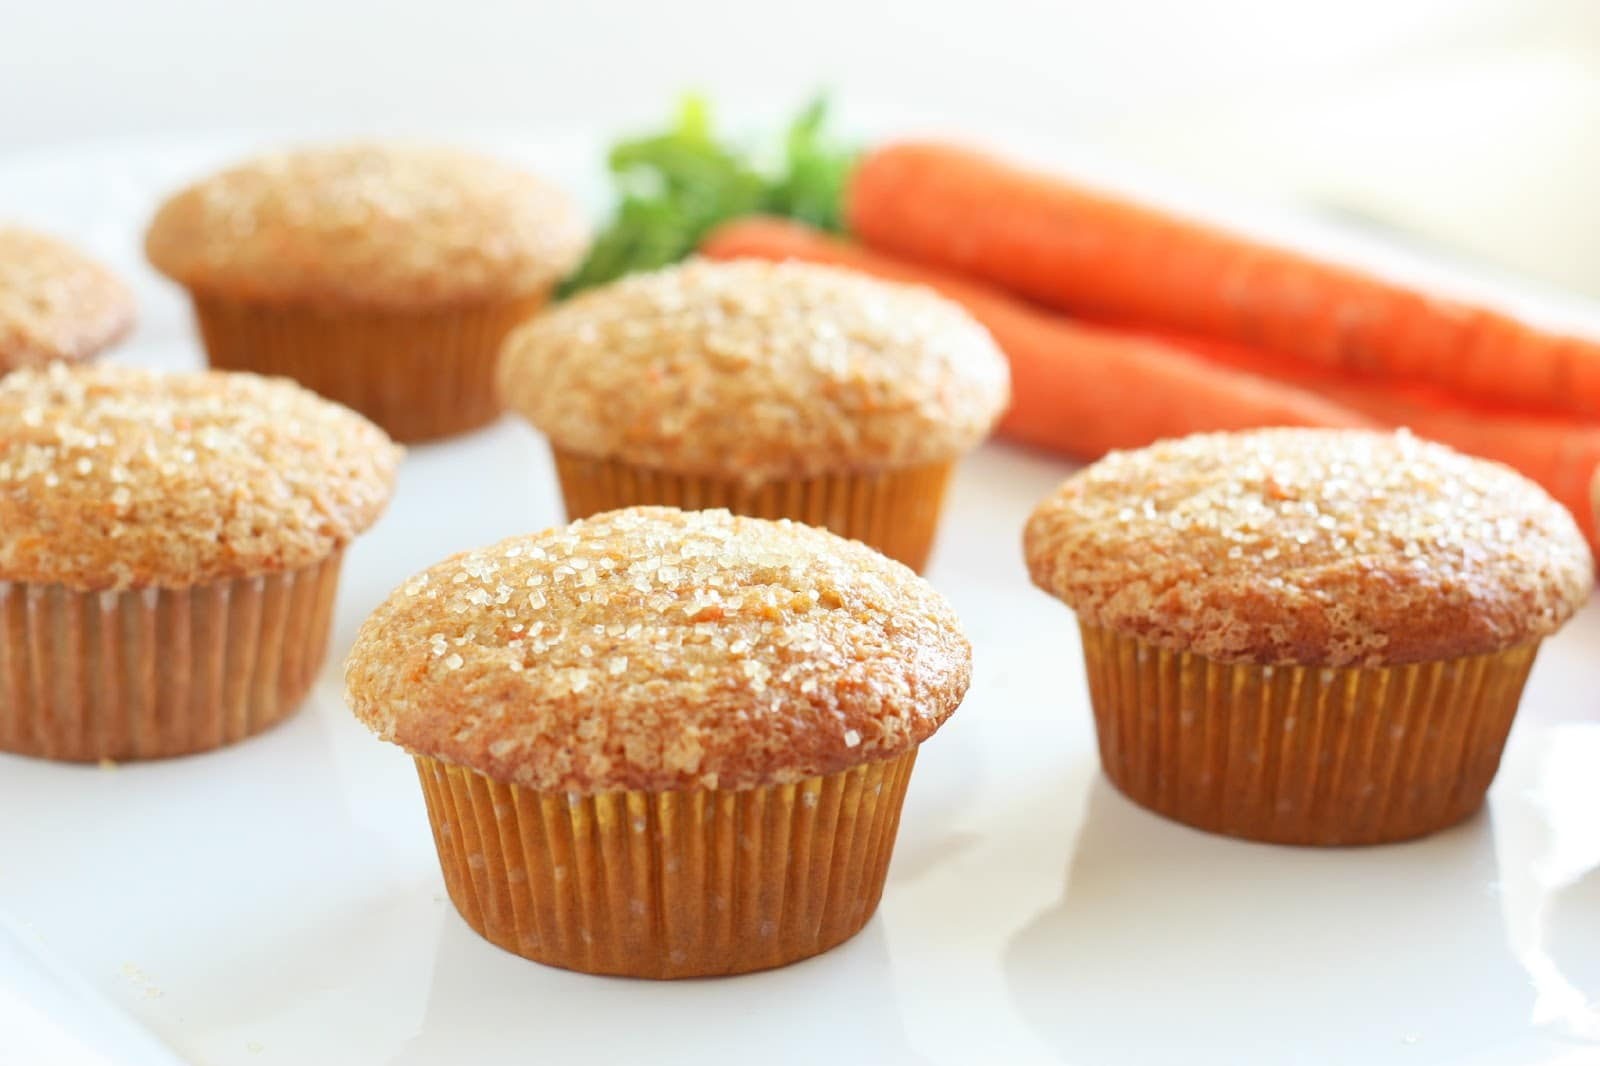 Cream Cheese Filled Carrot Cake Muffins - Cooking Classy